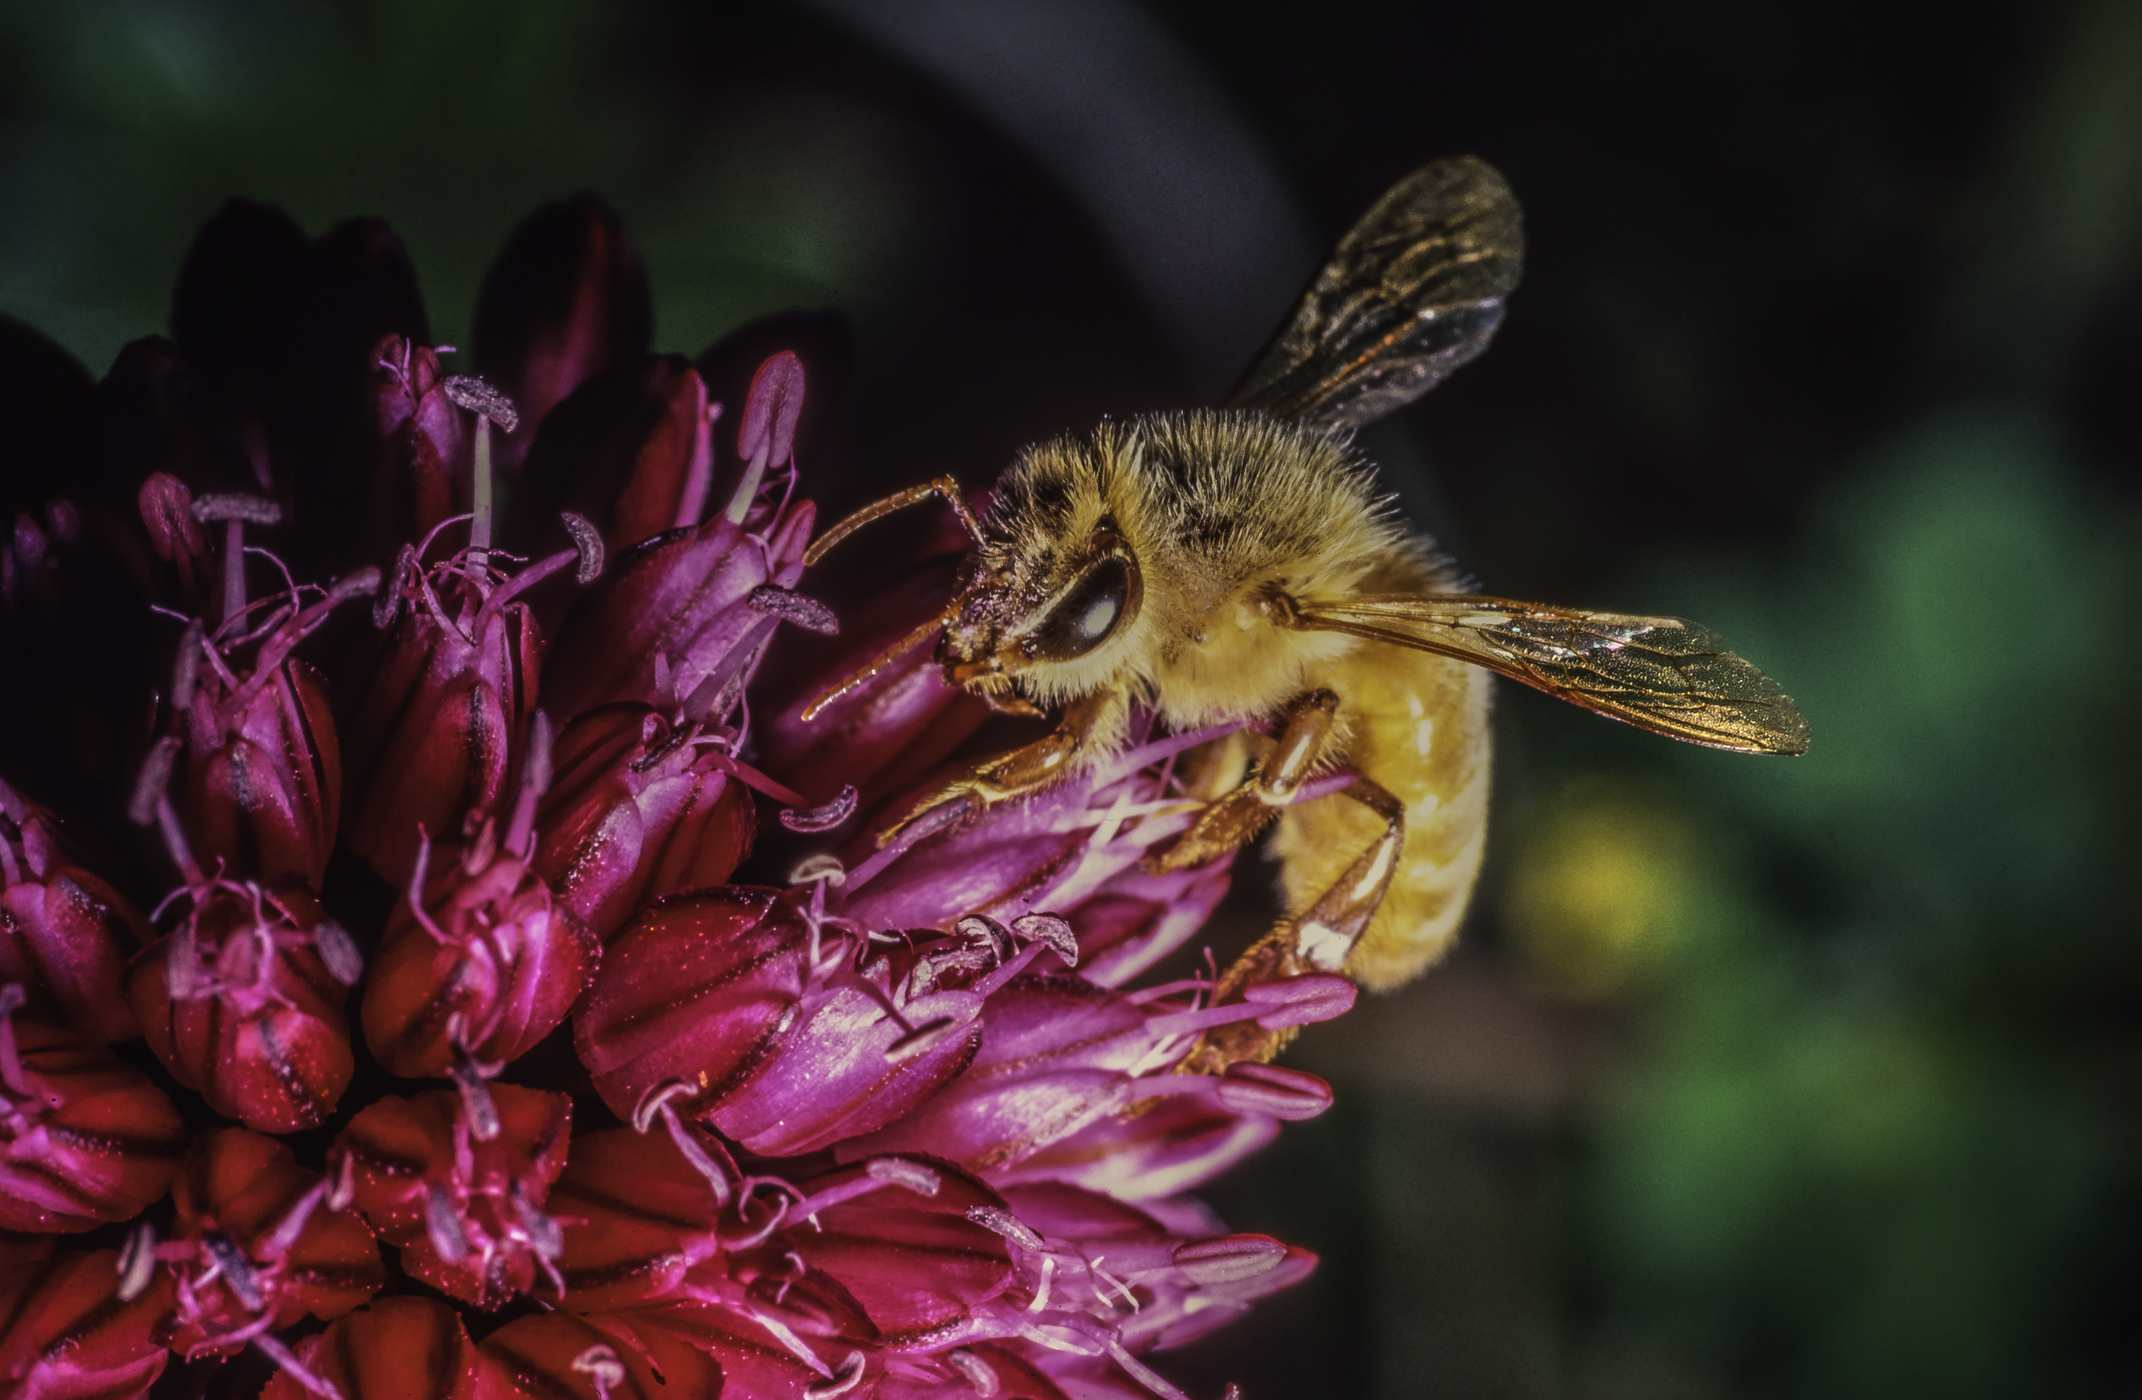 Honeybee searching for nectar on a vivid magenta flower